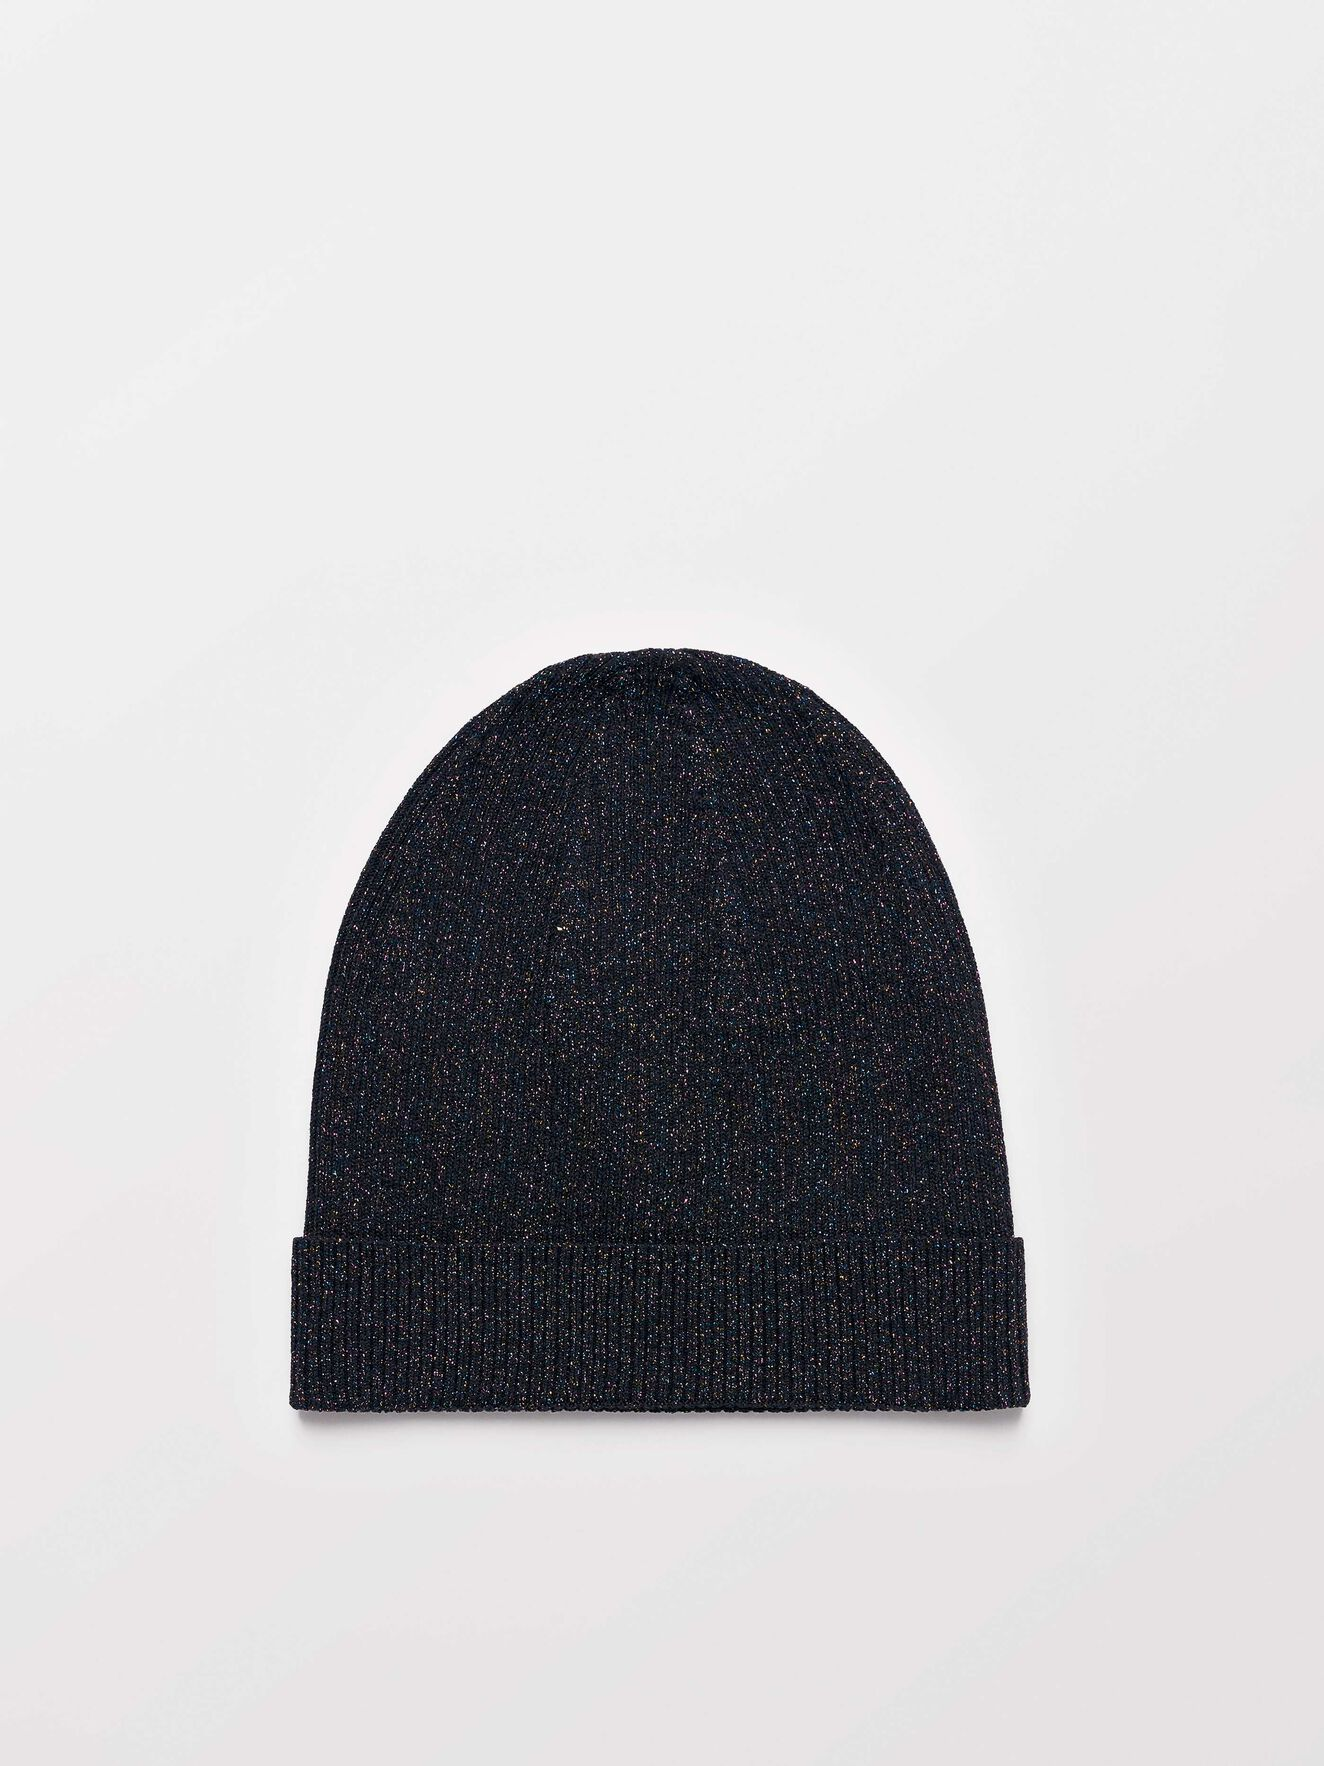 Fagiolo L Beanie in Midnight Black from Tiger of Sweden